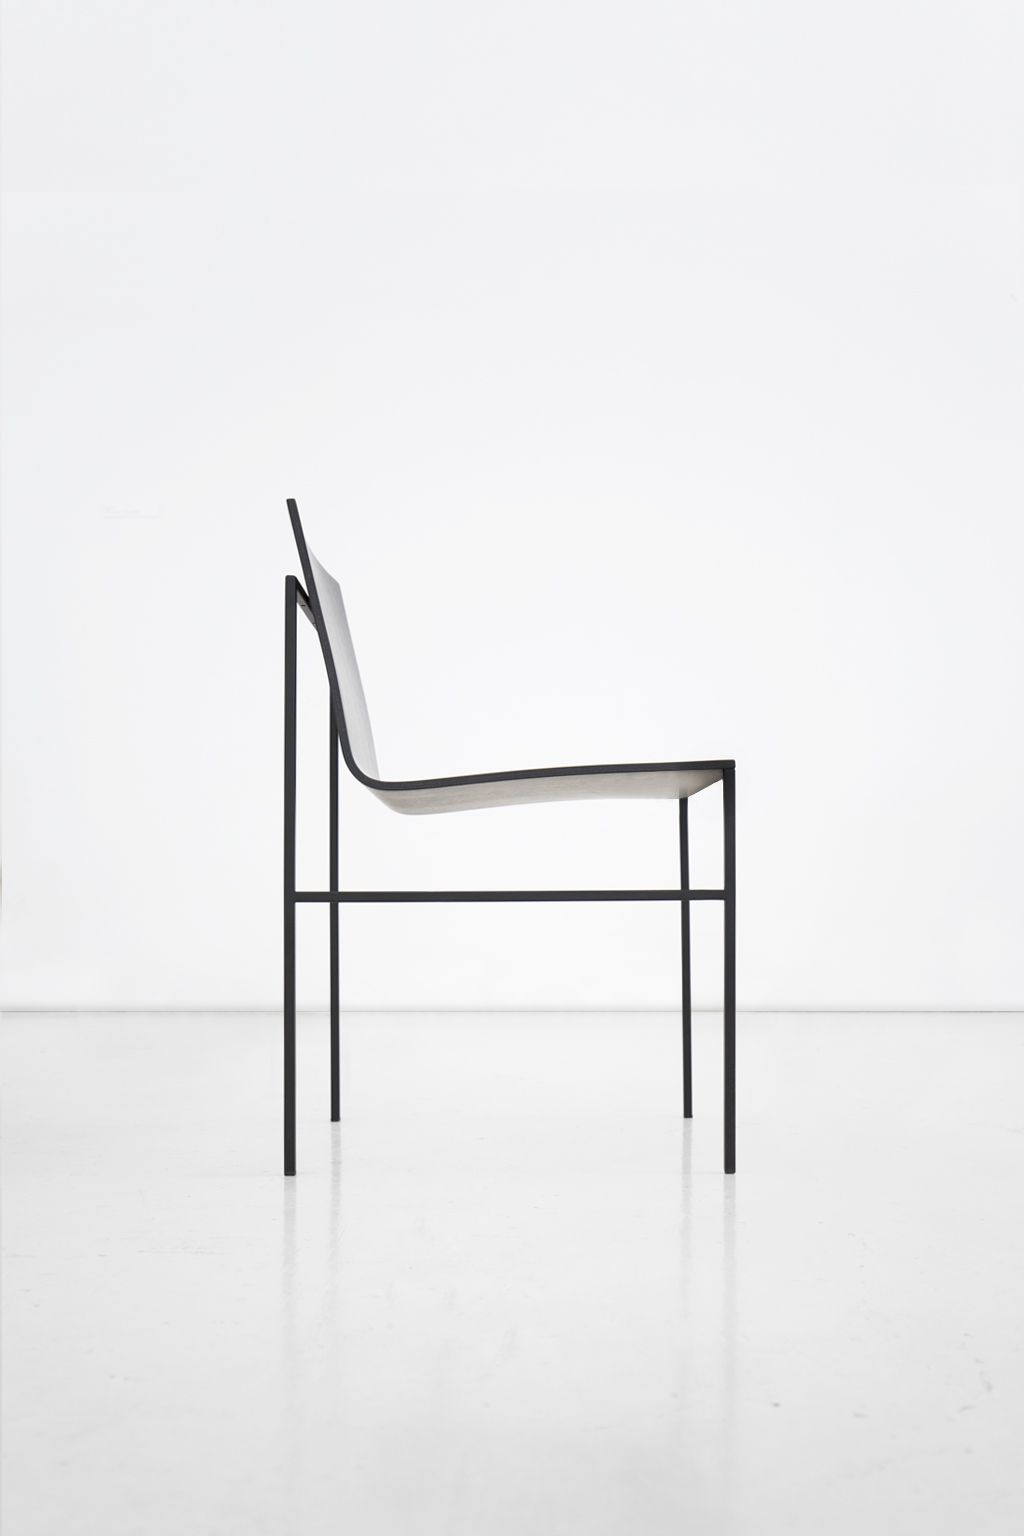 Designer Chairs Used A Chair Is A Minimalist Chair Created By Spain Based